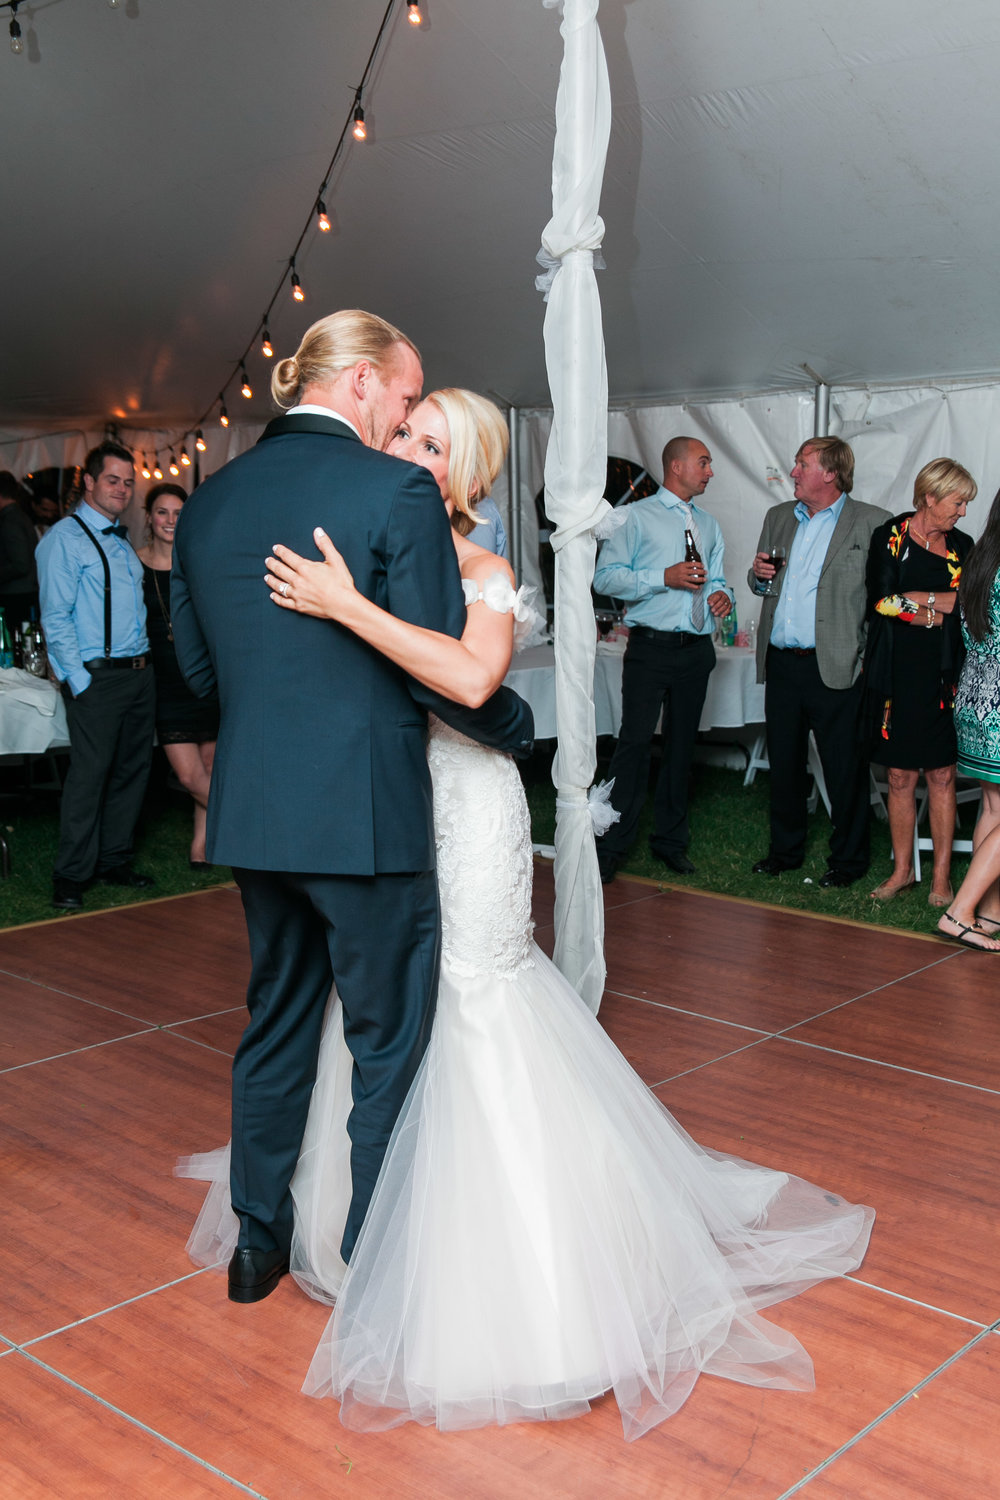 Couple's first dance at Muskoka wedding